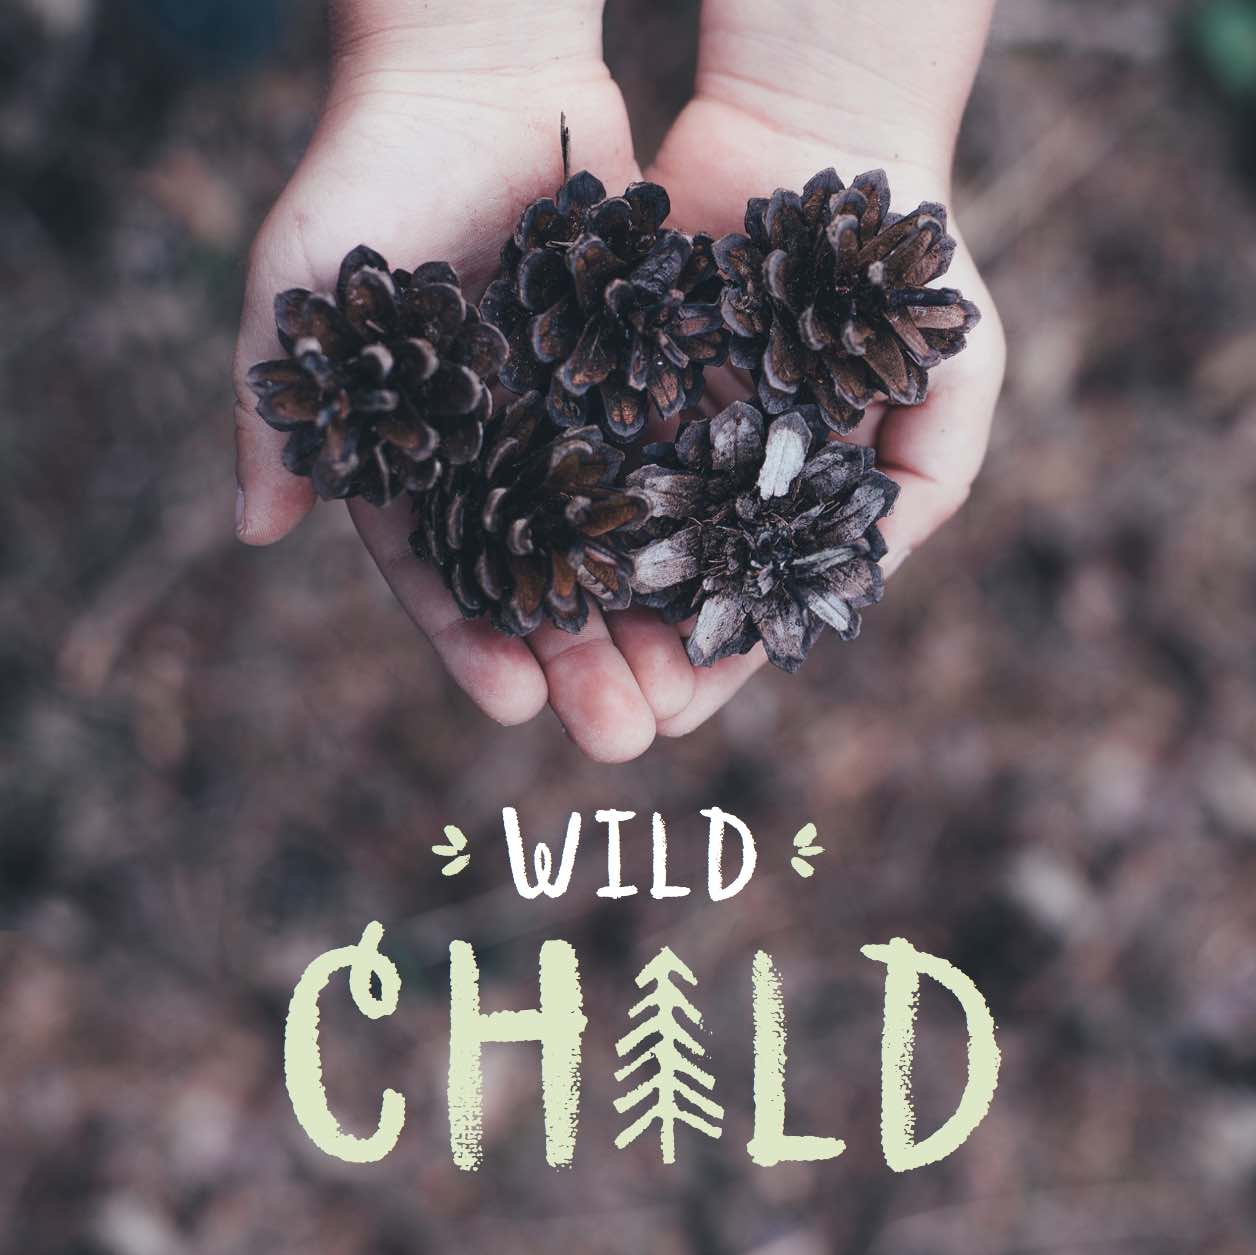 SOLD OUT - Wild Child